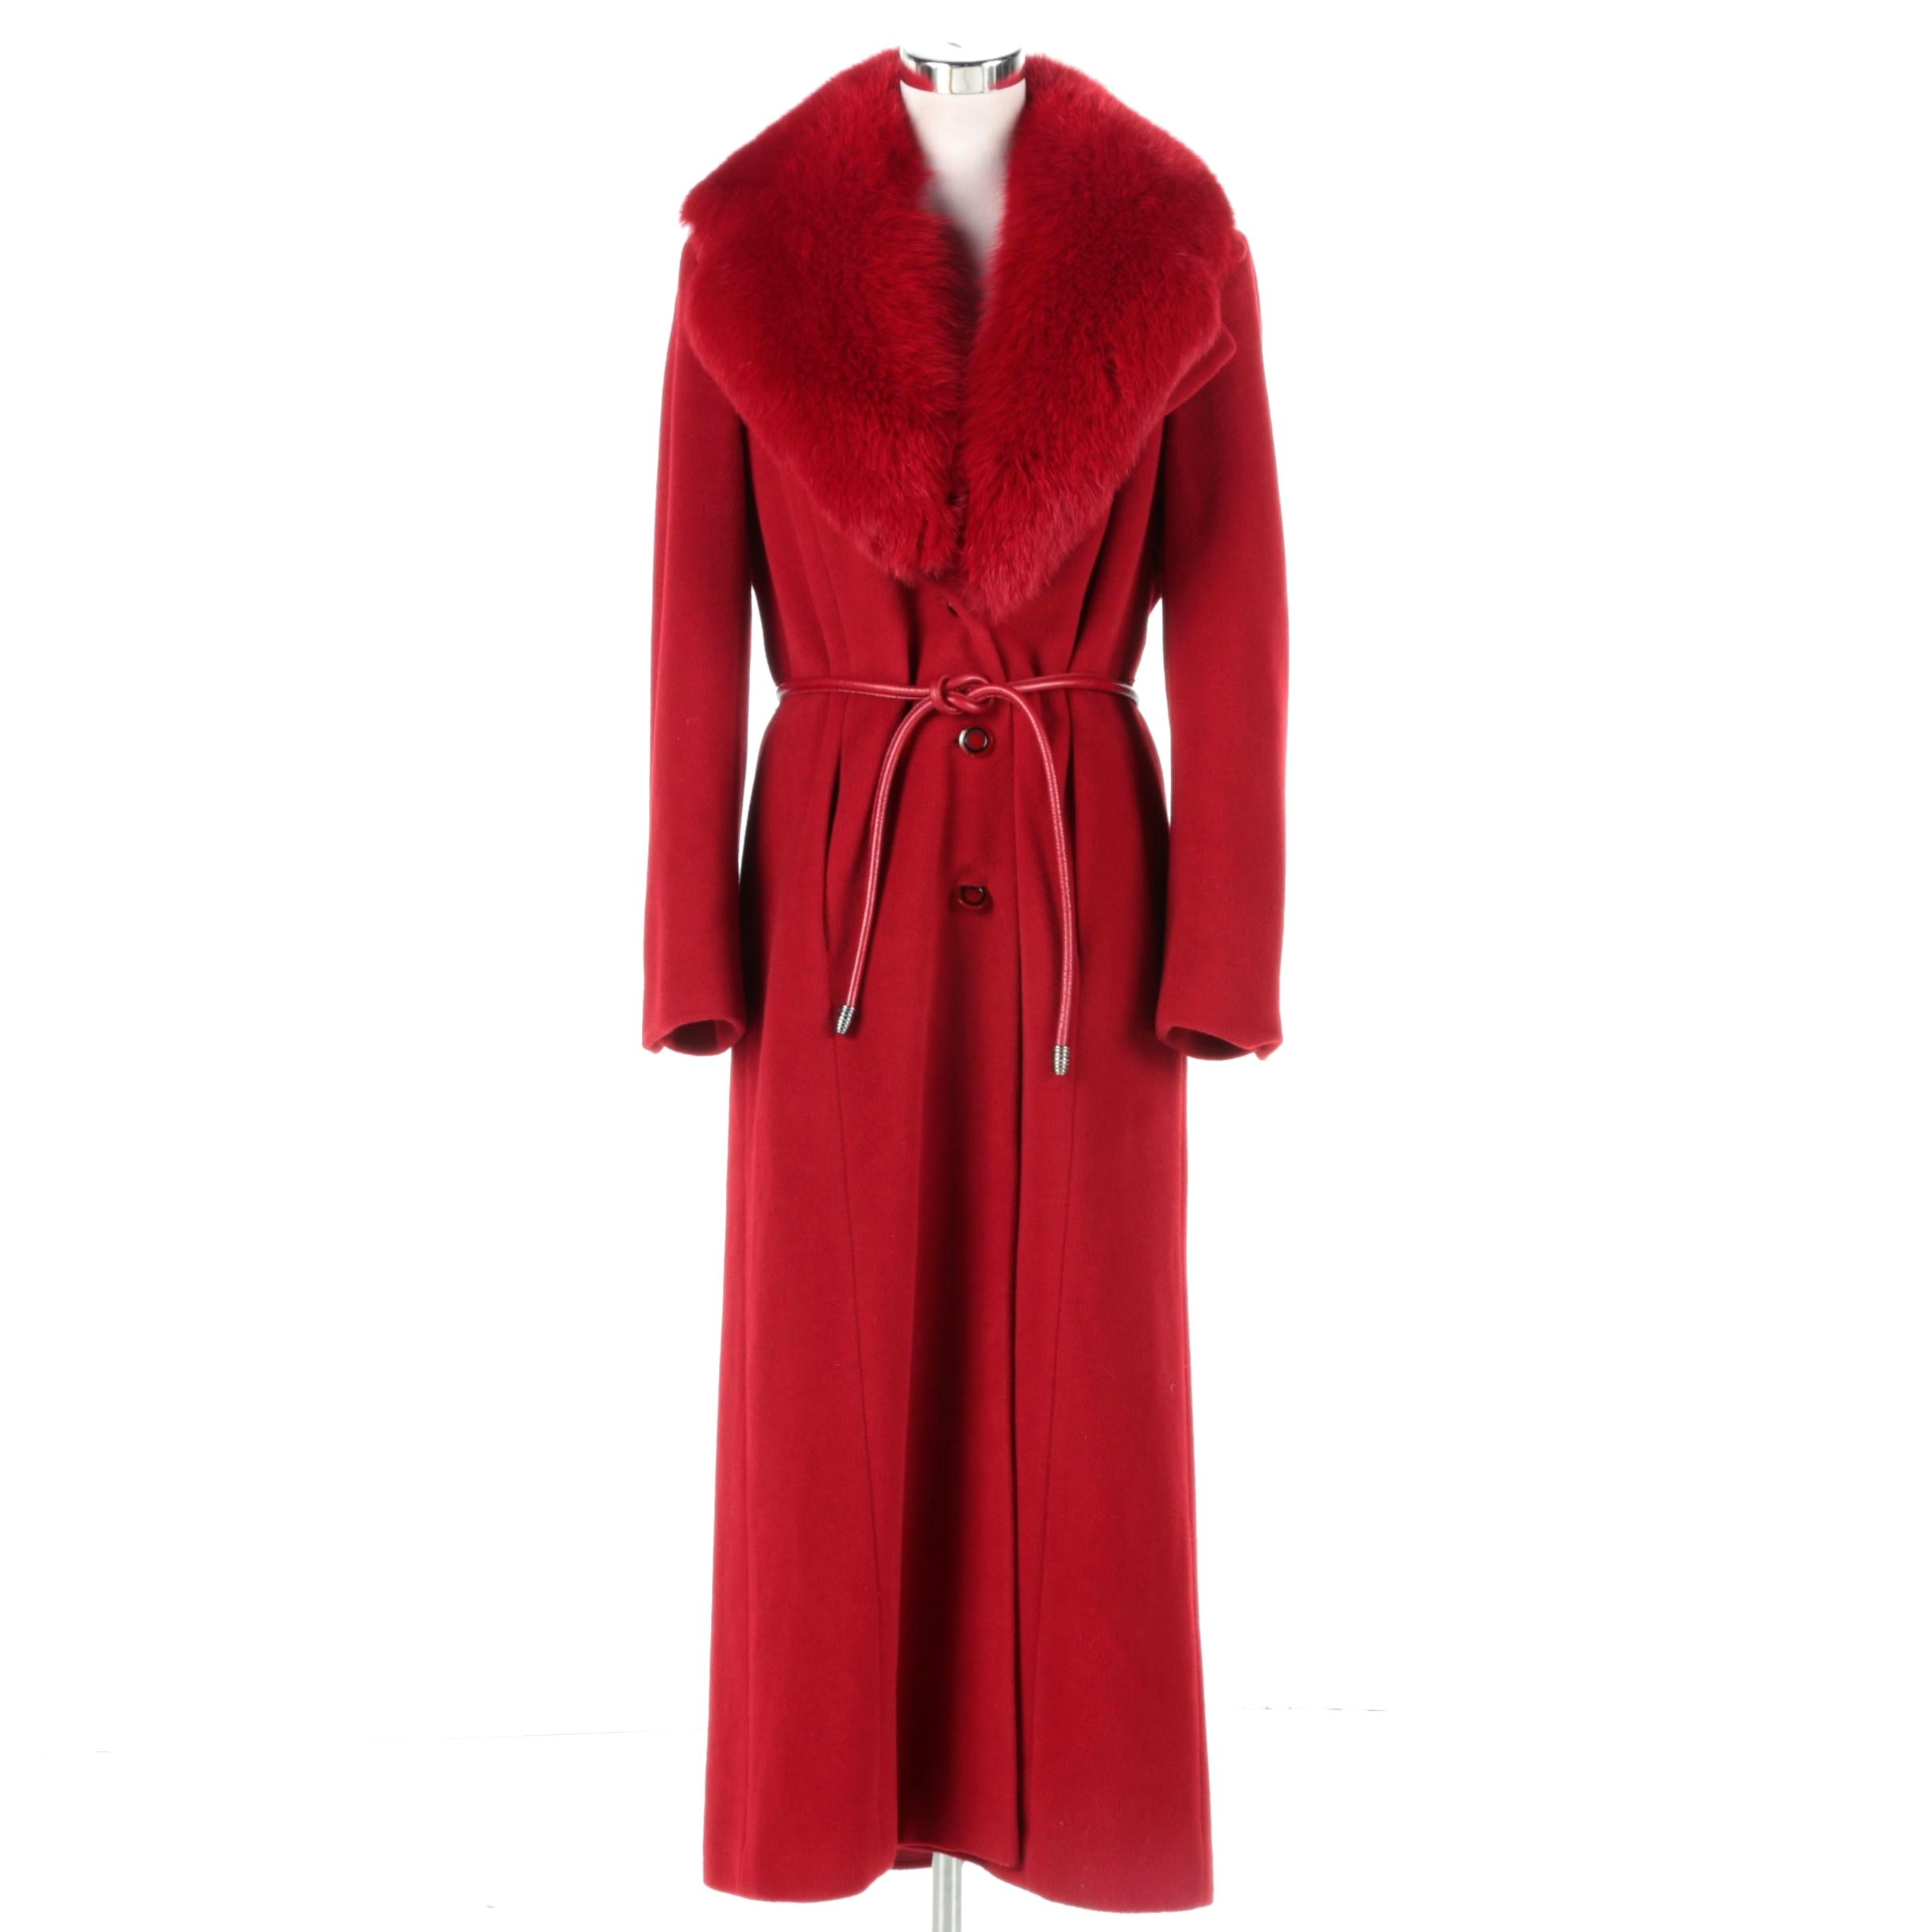 B Bella Bicchí by Sal Red Wool Coat with Dyed Red Fox Fur Collar